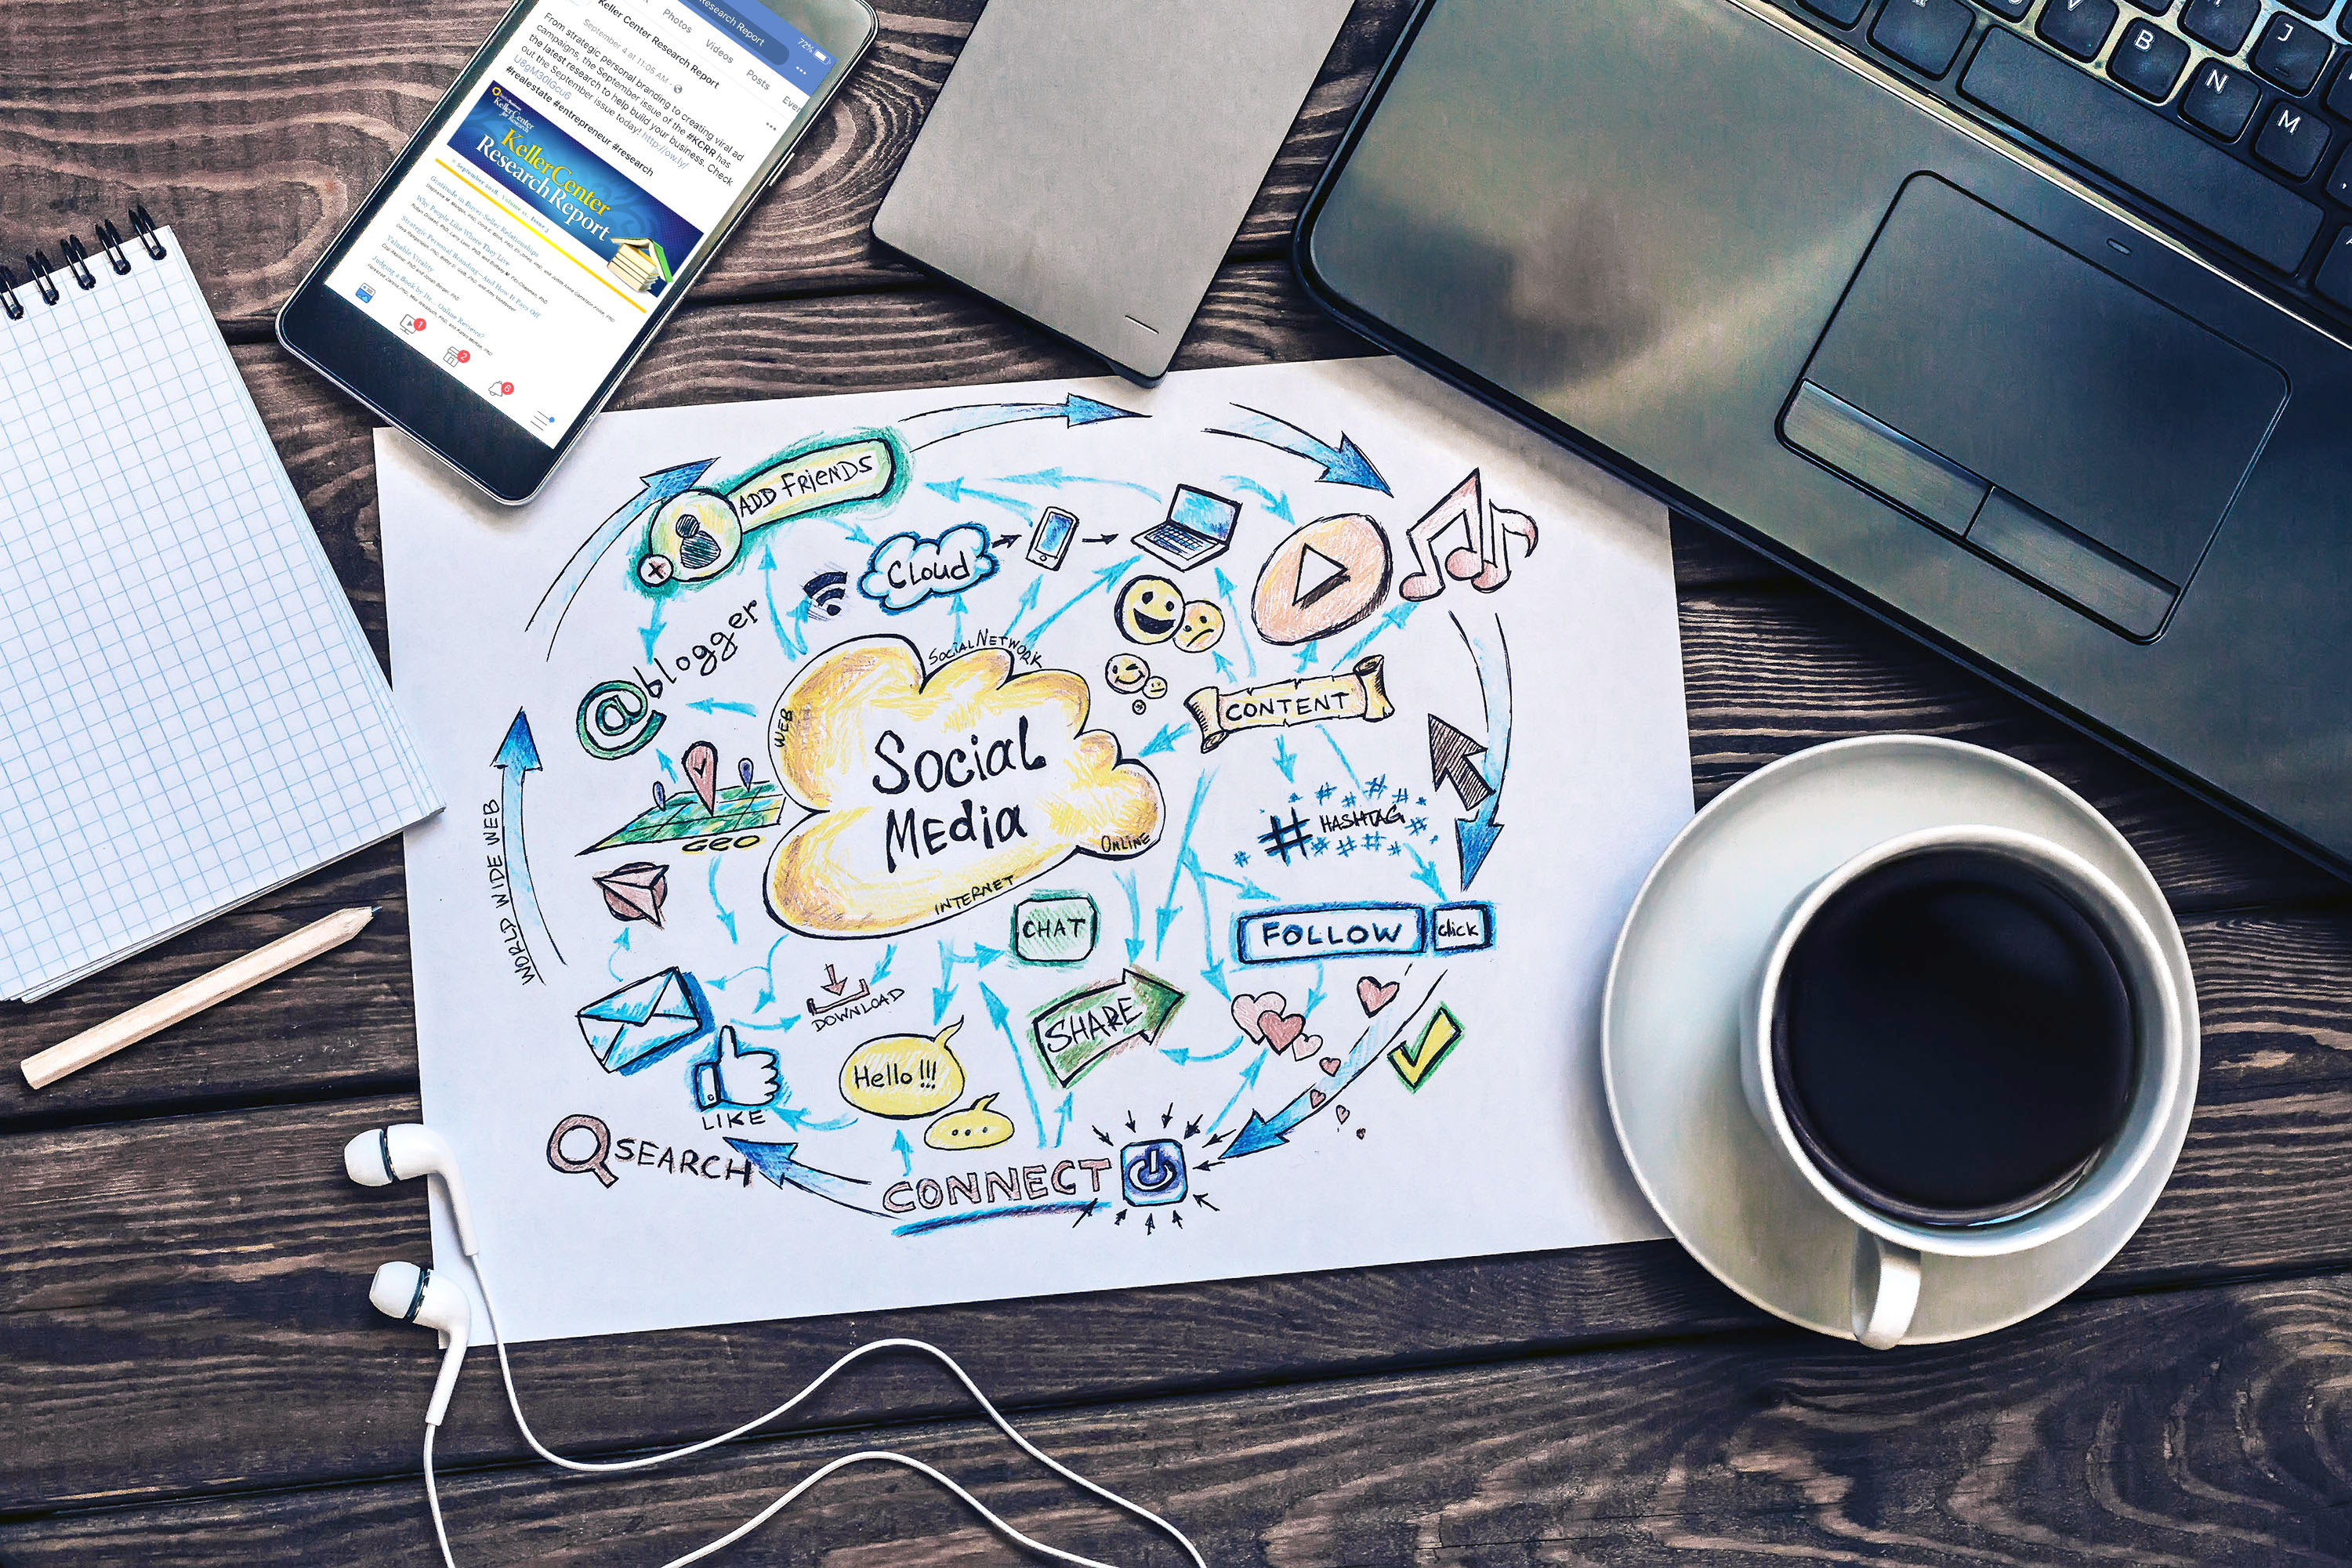 Stock photo of desktop with a drawing of social media on a paper